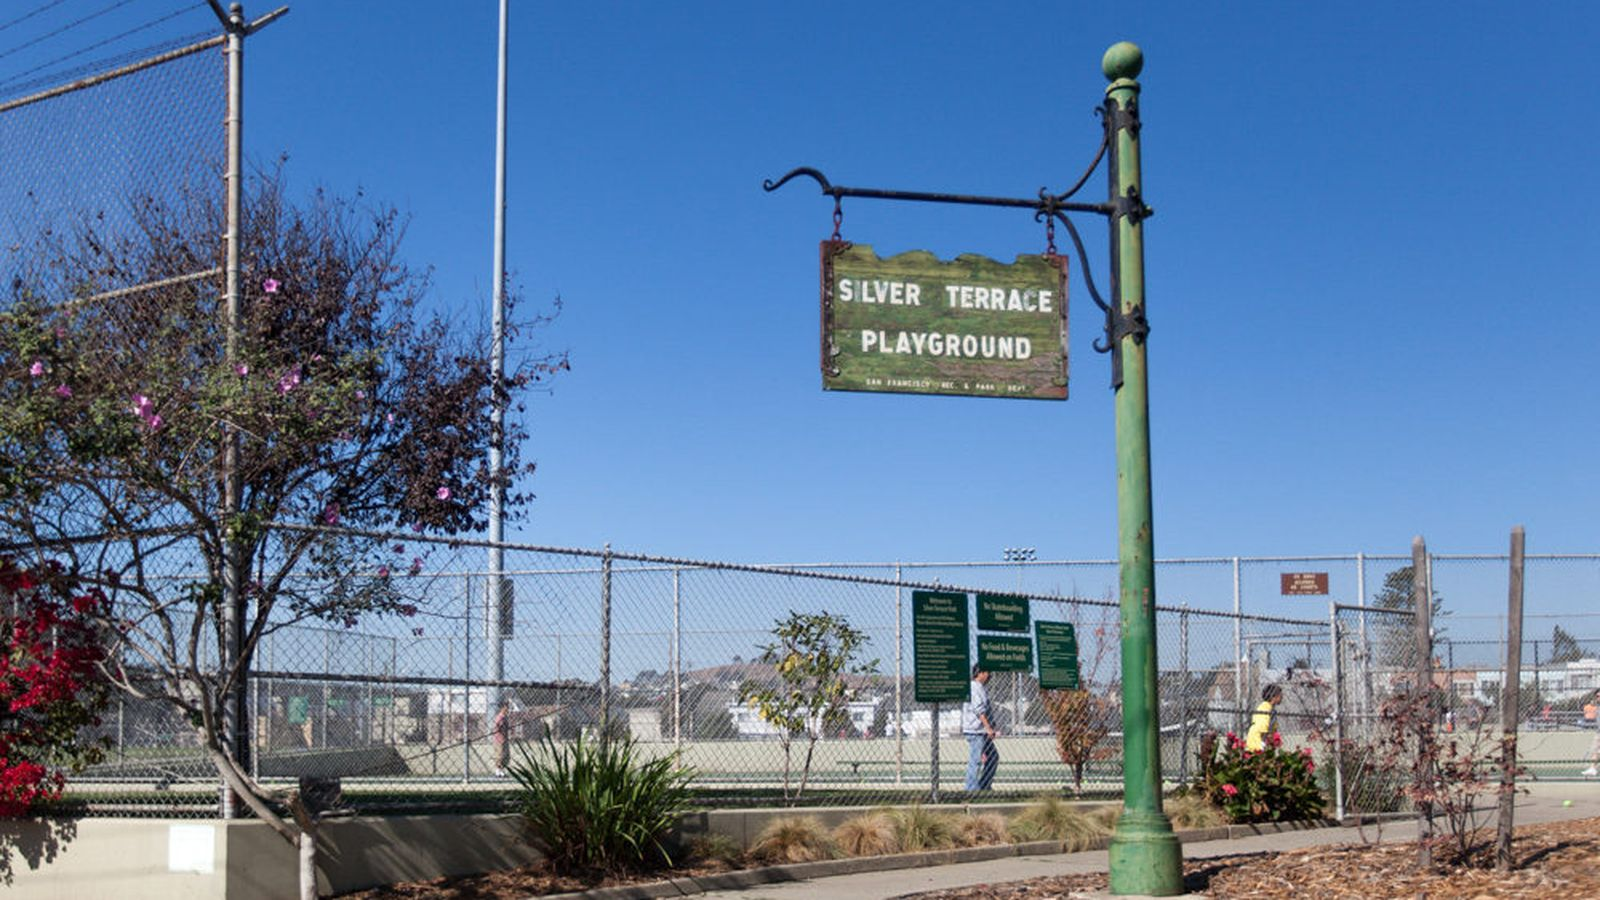 Silver Terrace Playground is a neighborhood park that features a turf field, sport courts, a baseball diamond, and play equipment.